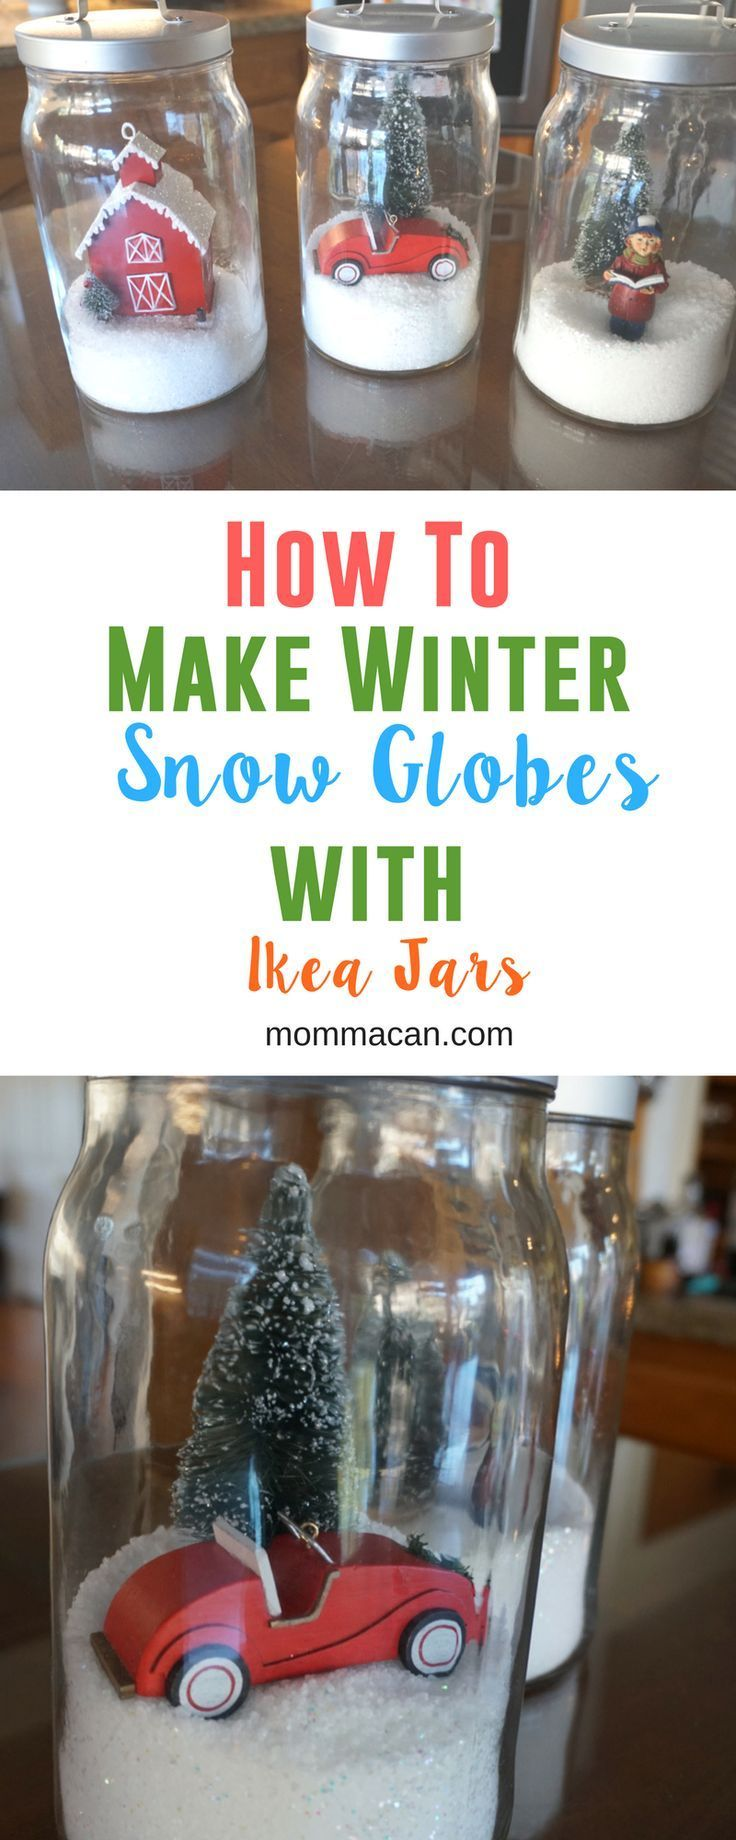 How To Make Winter Snow Globes With